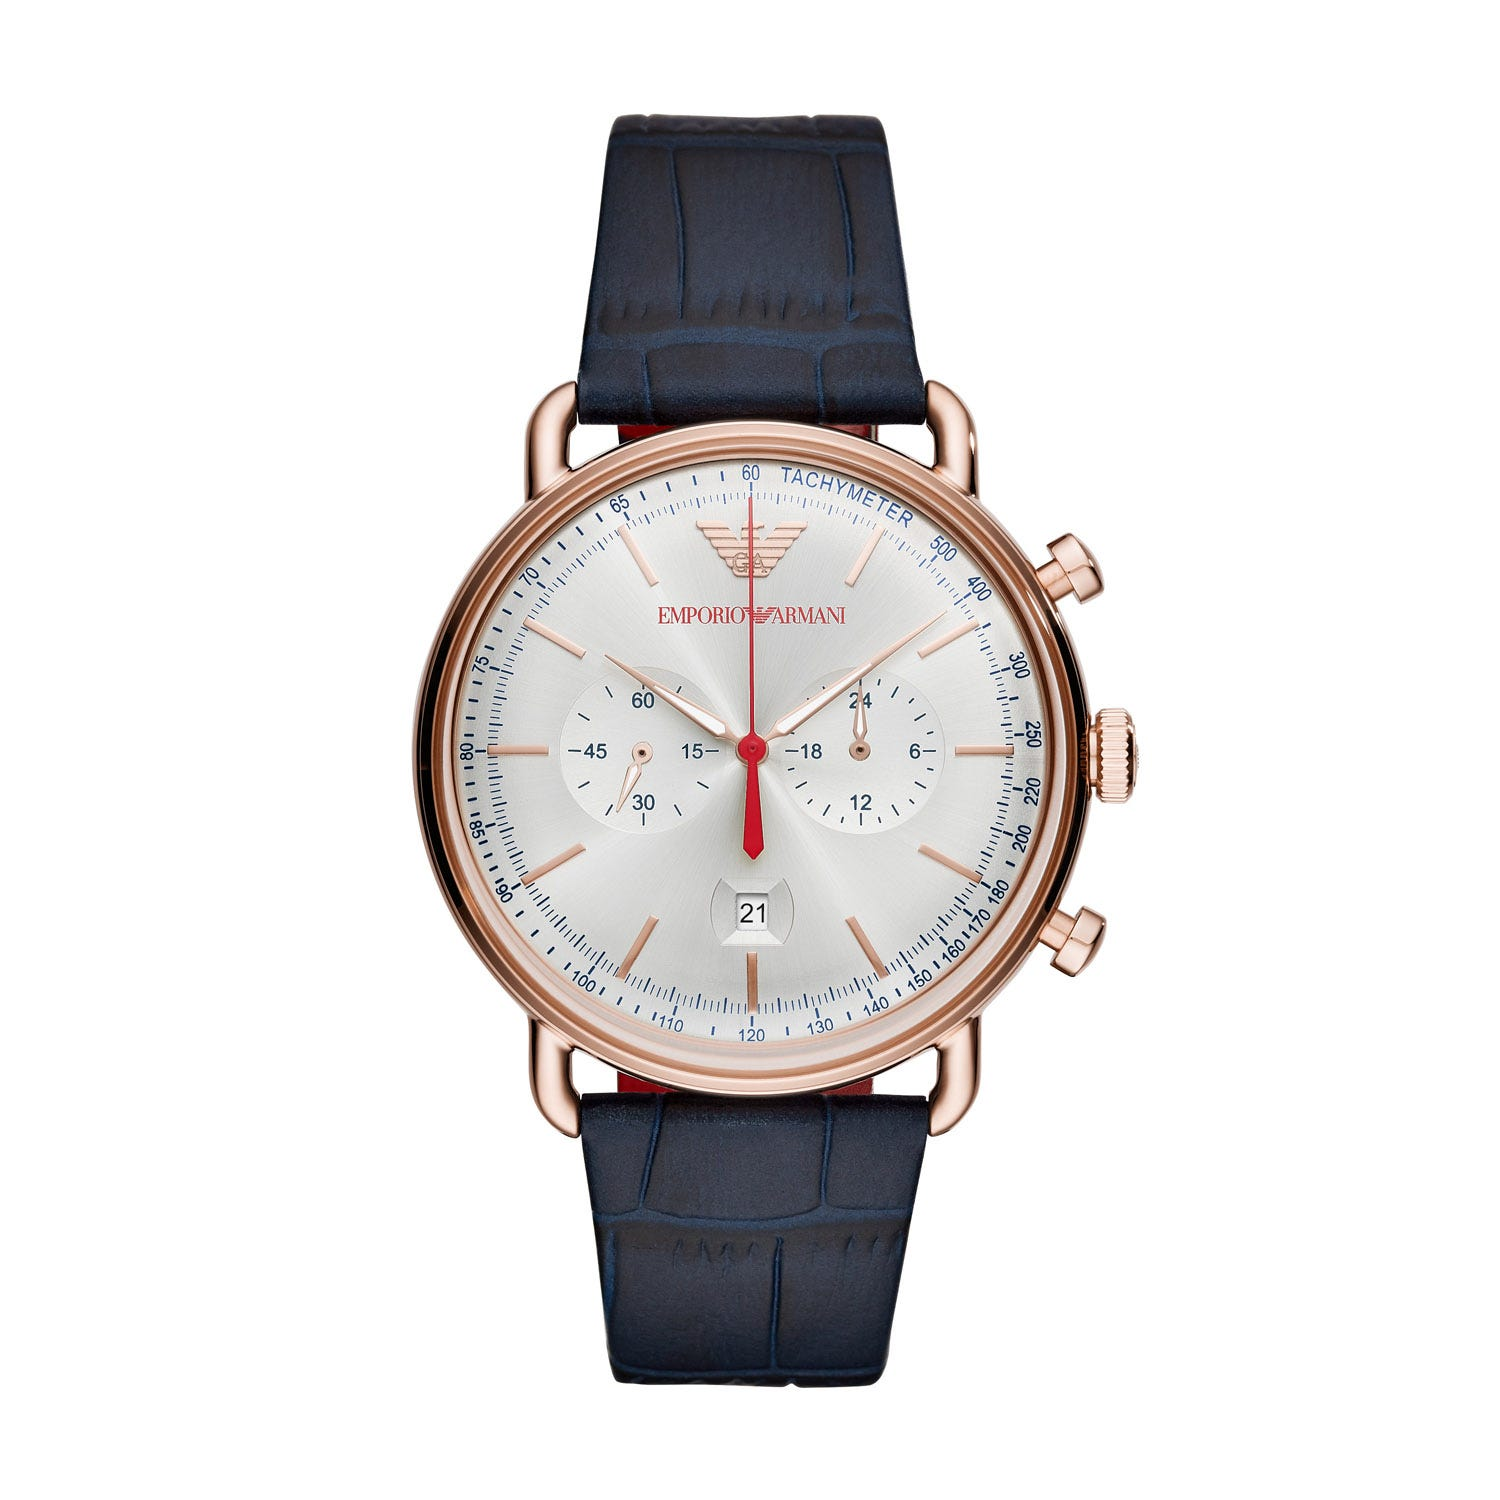 Emporio Armani Chronograph Blue Leather Men's Watch